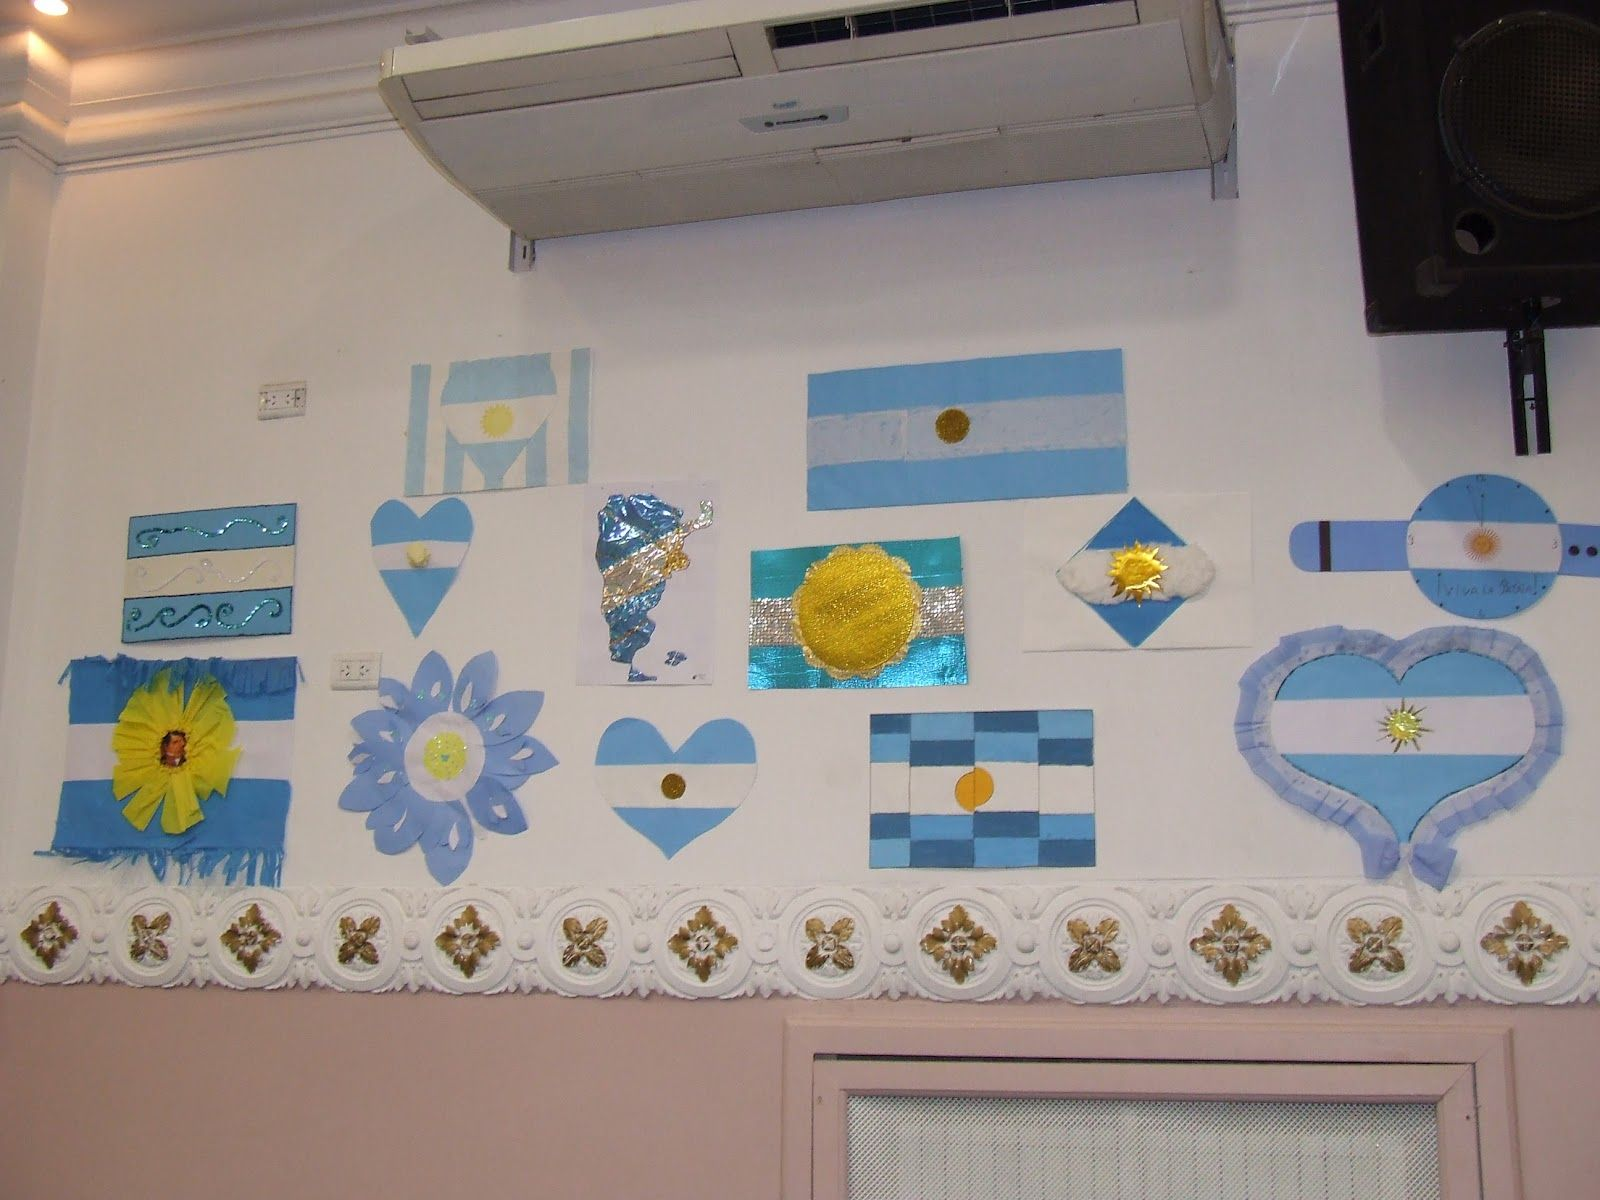 Dia de la bandera argentina decoracion buscar con google for Ideas para decorar mi jardin